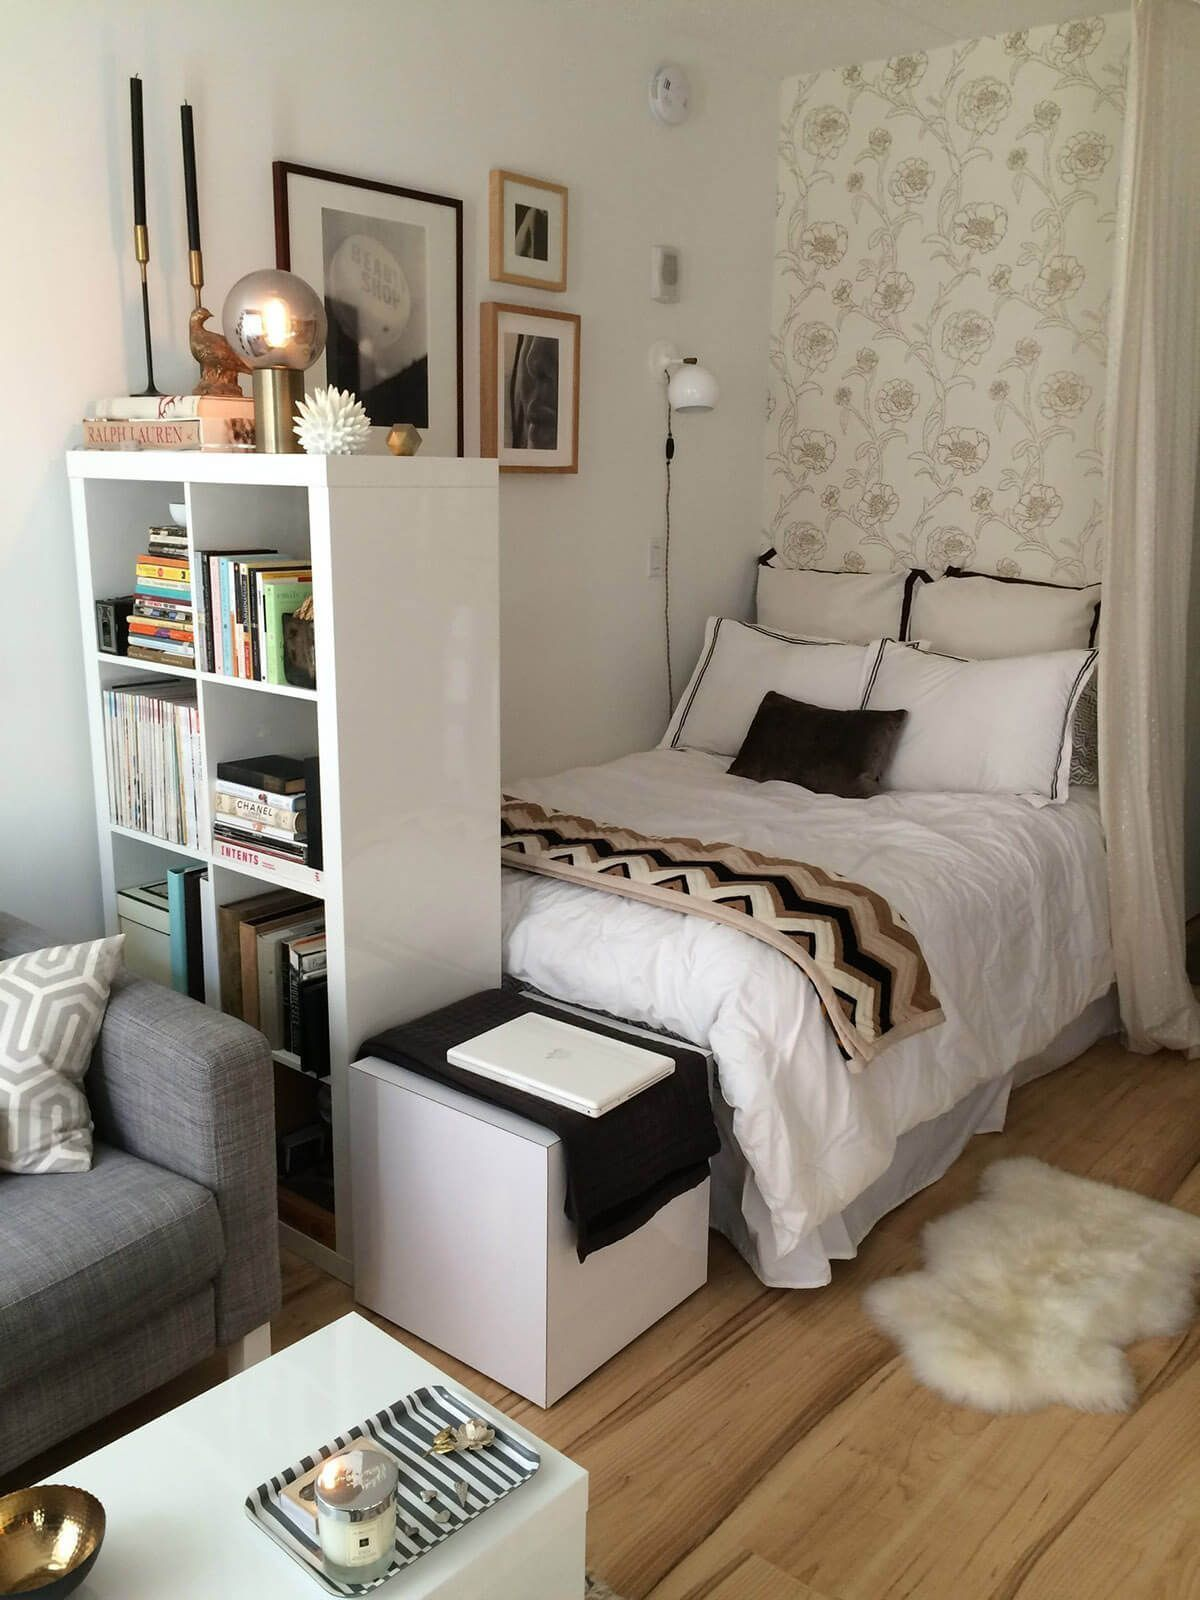 Small Bedroom Ideas With A Tall Bookshelf #Bedroomdesignideas